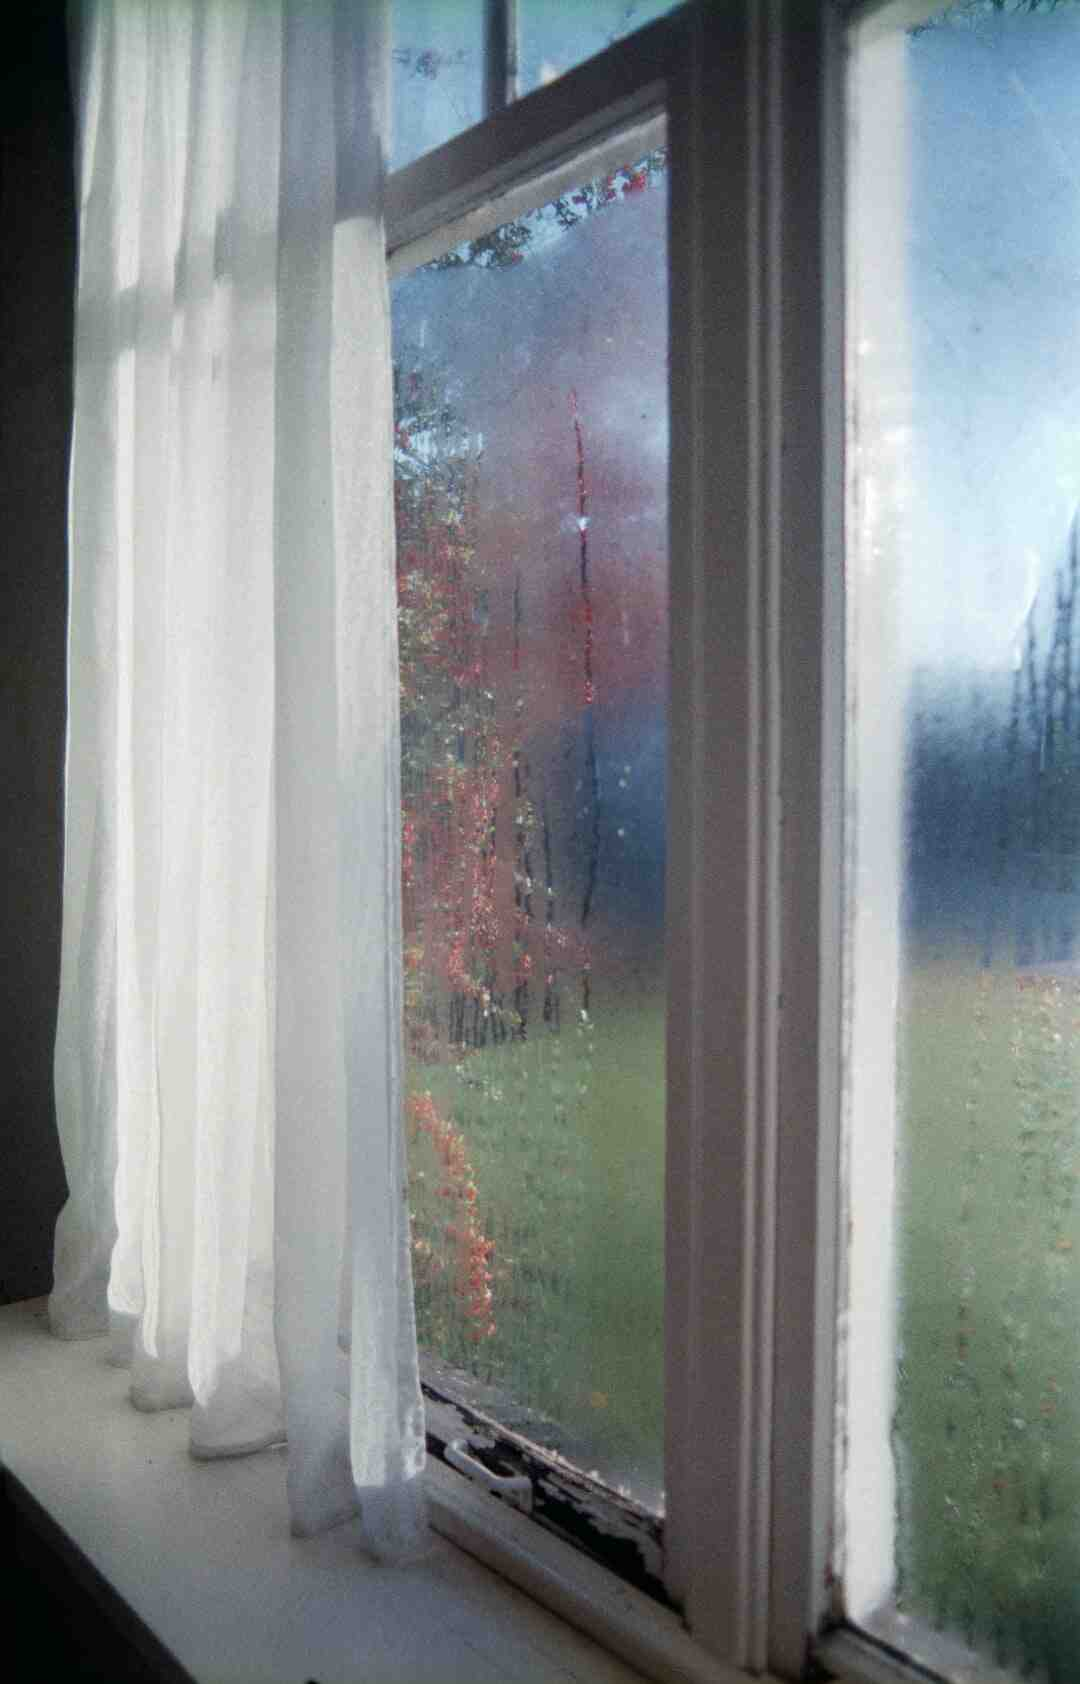 How to keep windows from fogging up